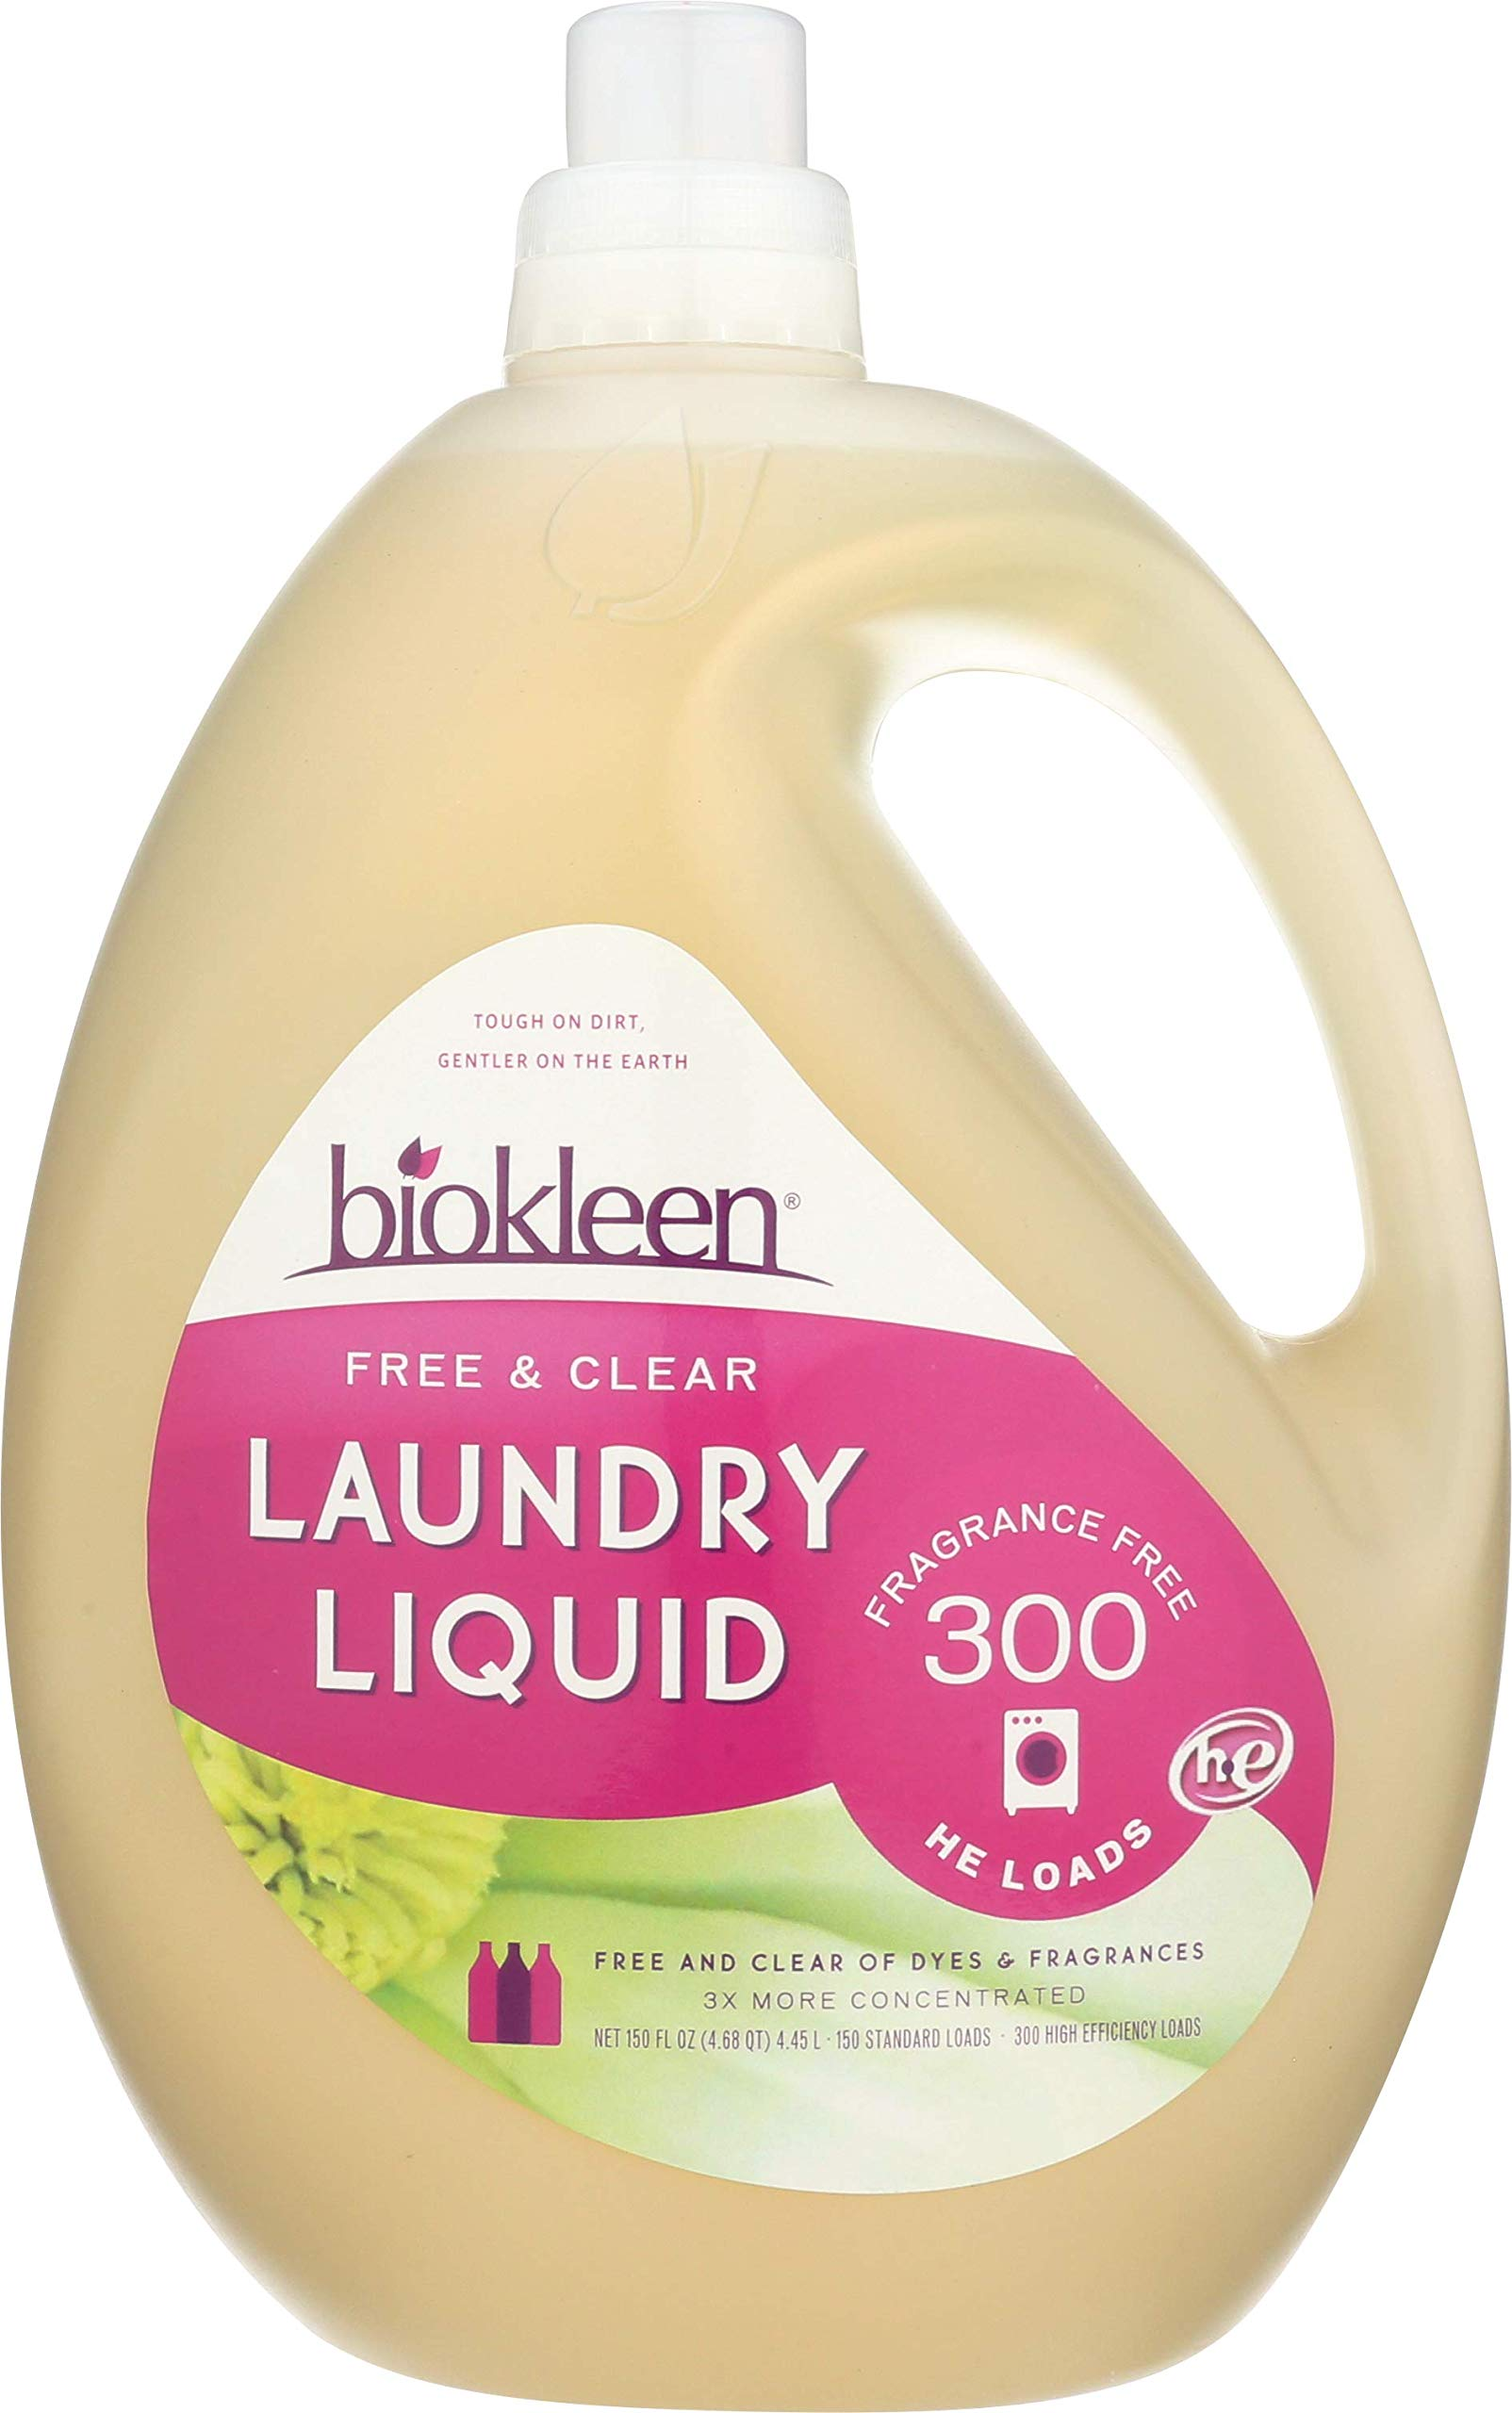 Biokleen Laundry Detergent Liquid, Concentrated, Eco-Friendly, Non-Toxic, Plant-Based, No Artificial Fragrance, Free & Clear, Unscented, 150 Ounces - 300 HE Loads/150 Standard Loads (Pack of 3)